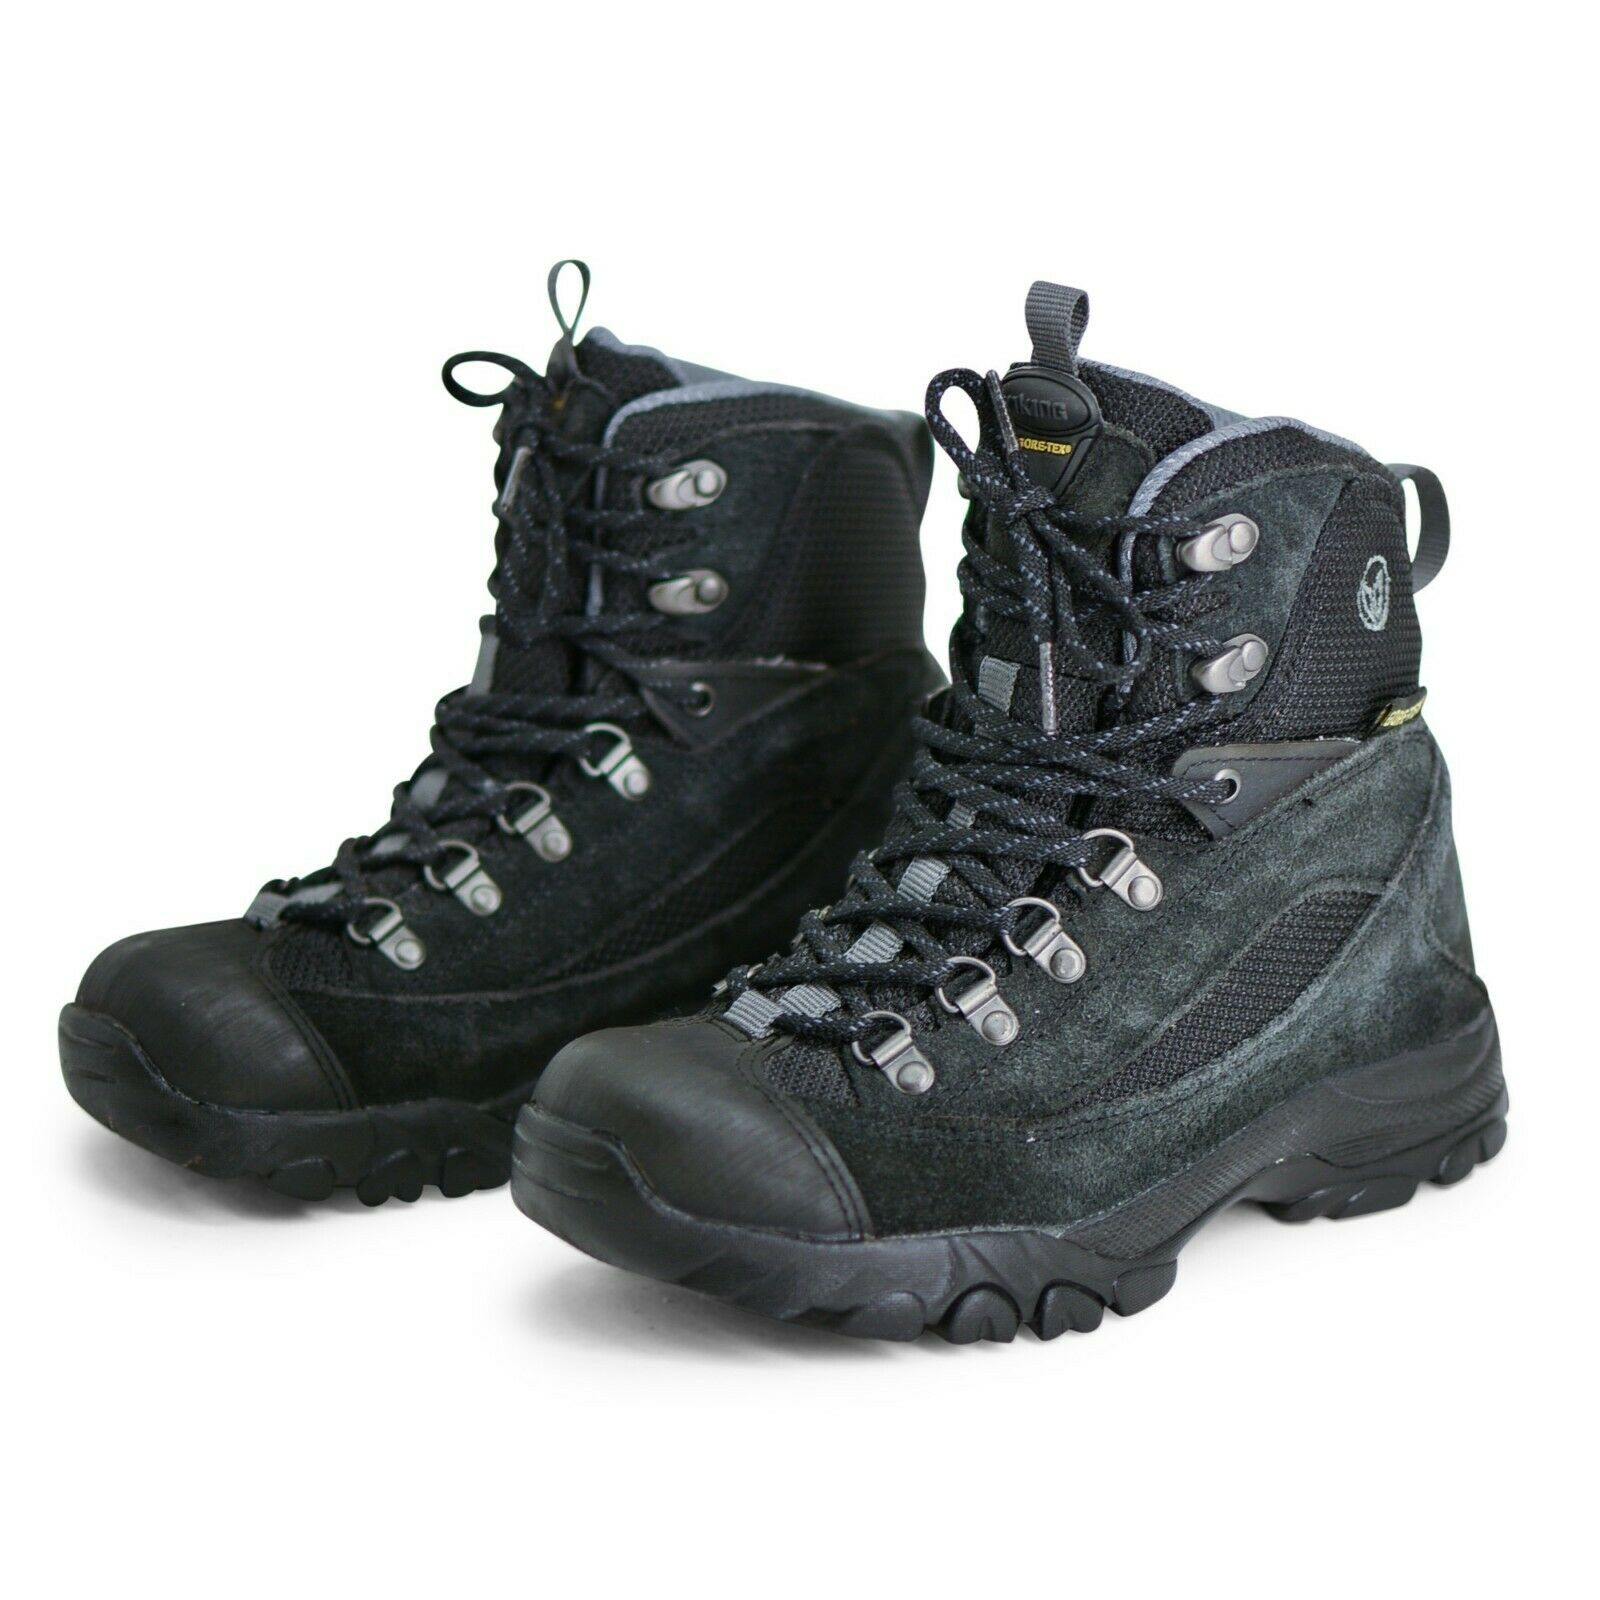 VIKING GORE TEX women lady boots hiking size US6 UK5 EUR38 VIETNAM Genuine